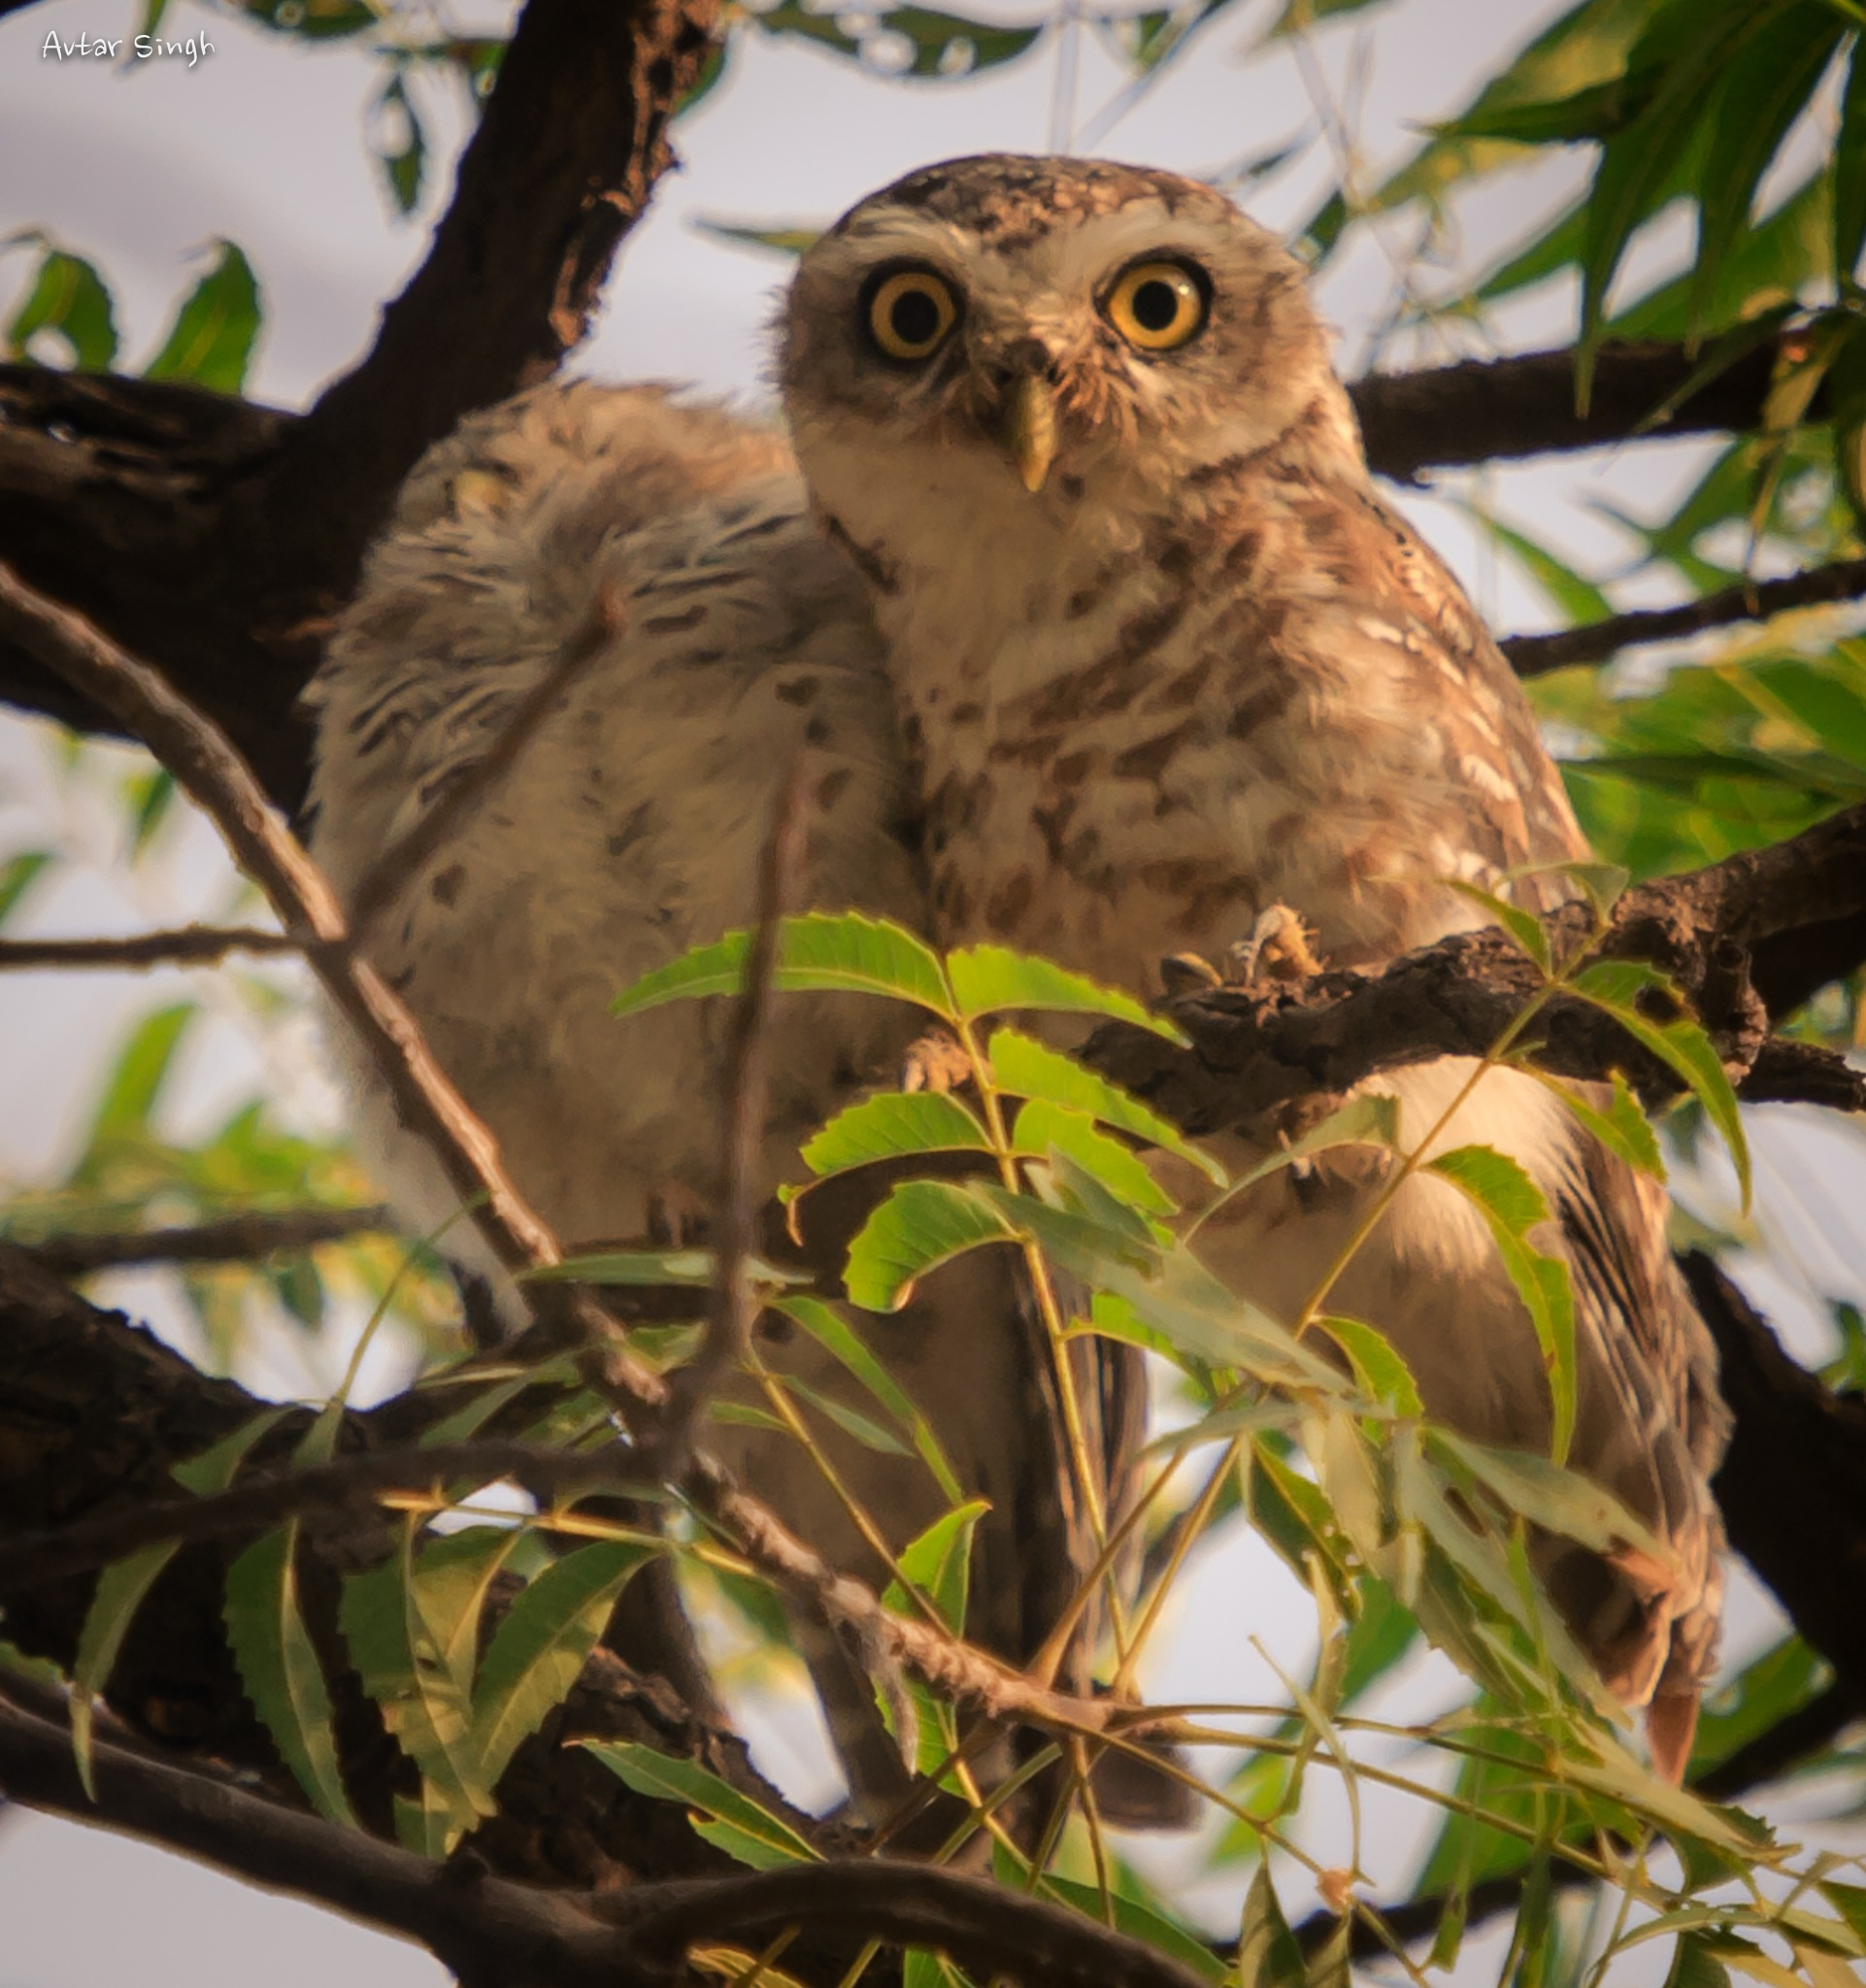 I am watching you  by Avtar Singh